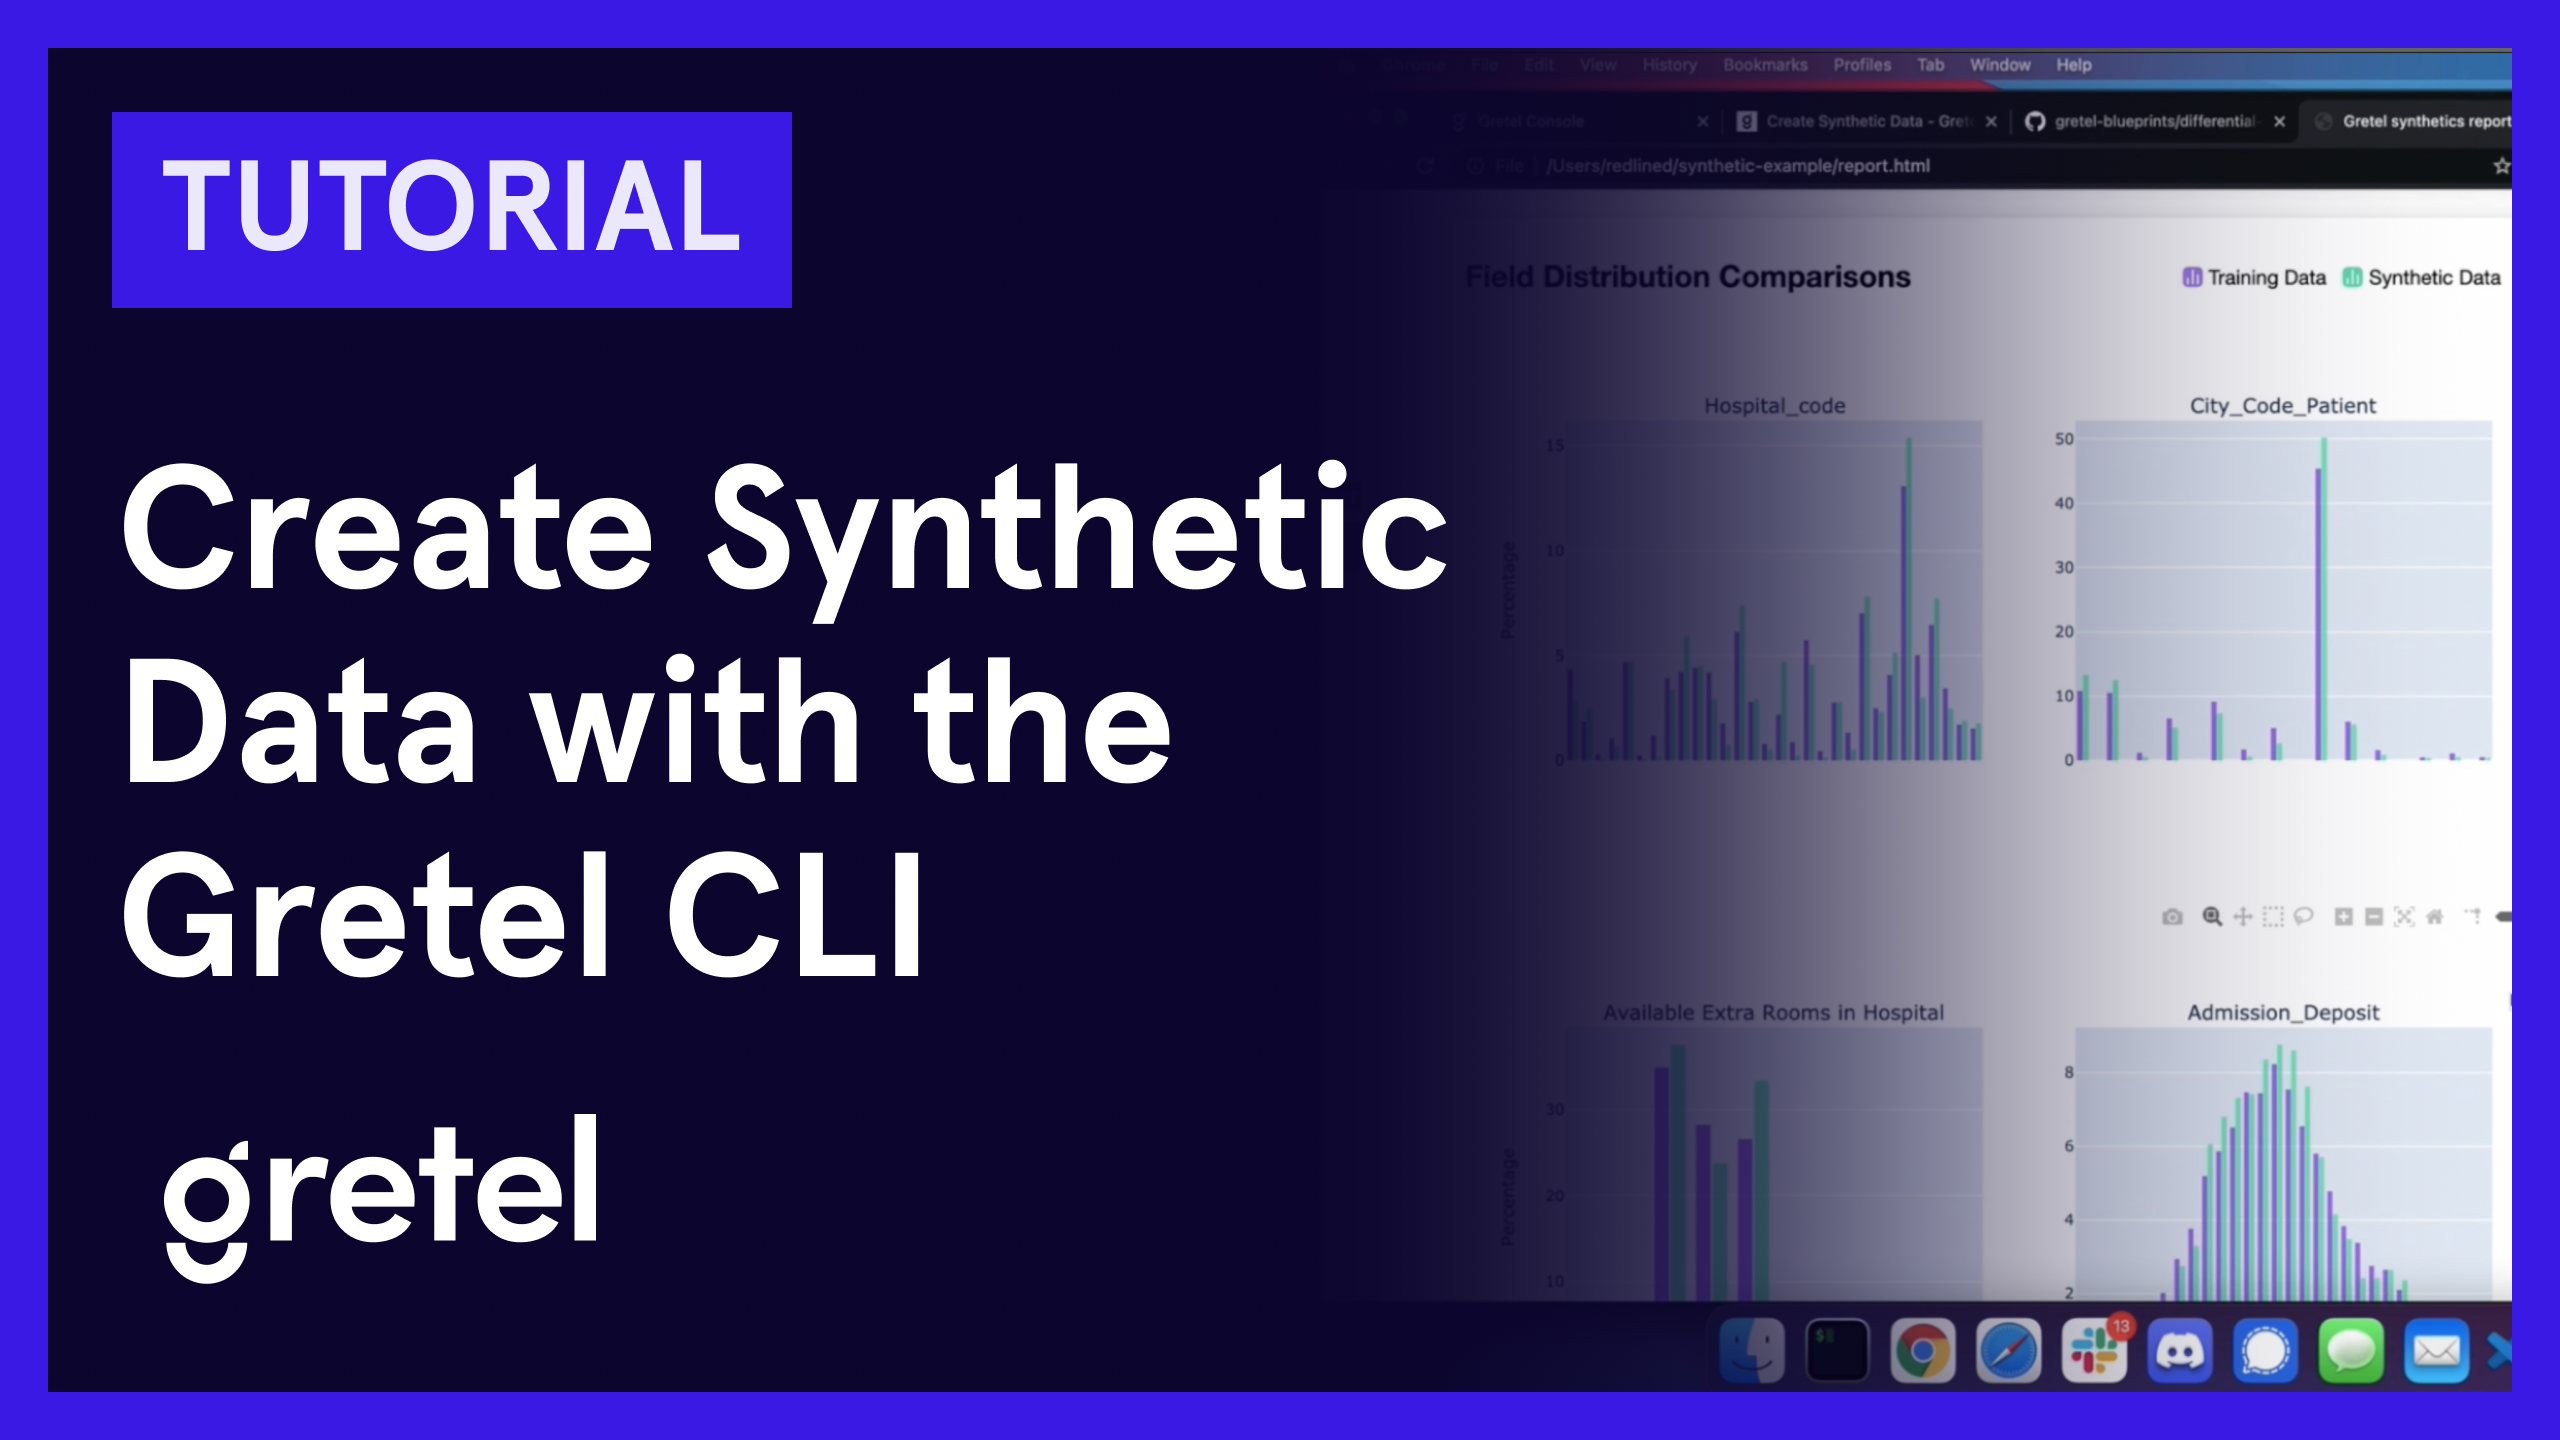 Create Synthetic Data with the Gretel CLI